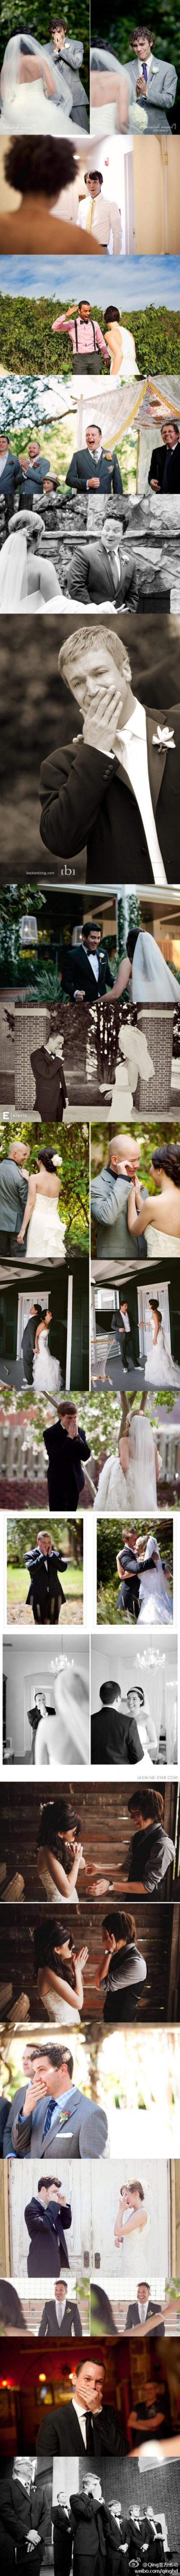 """""""My favorite part of the wedding is seeing the groom's face when he first sees his bride.."""""""